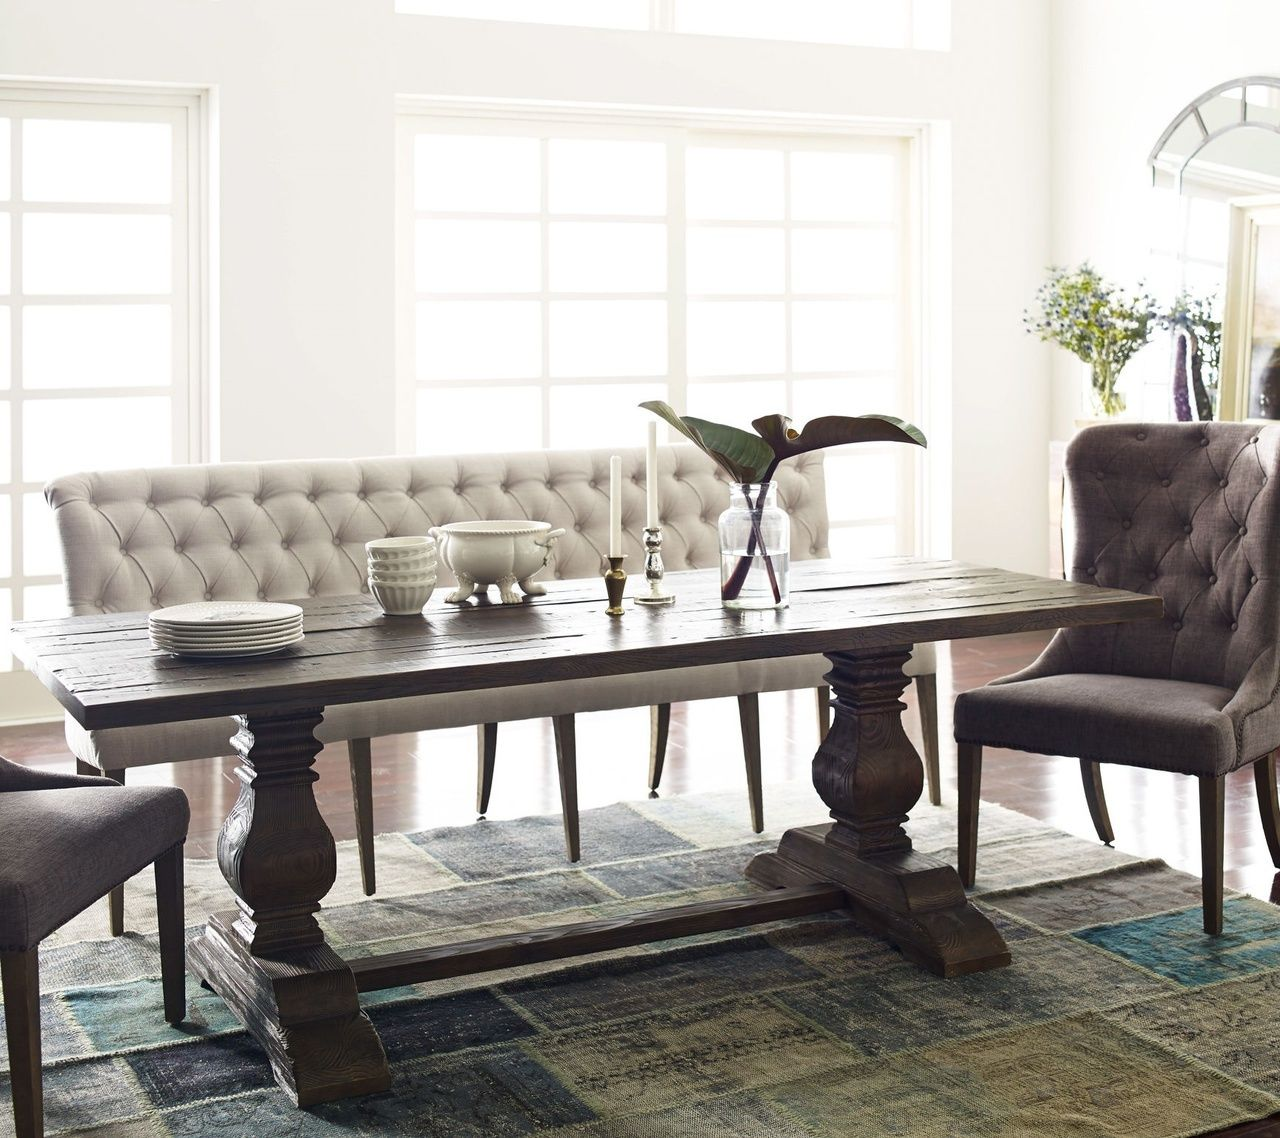 Dining Table With Bench And Chairs Were Comfortable: French Tufted Upholstered Dining Bench Banquette In 2019